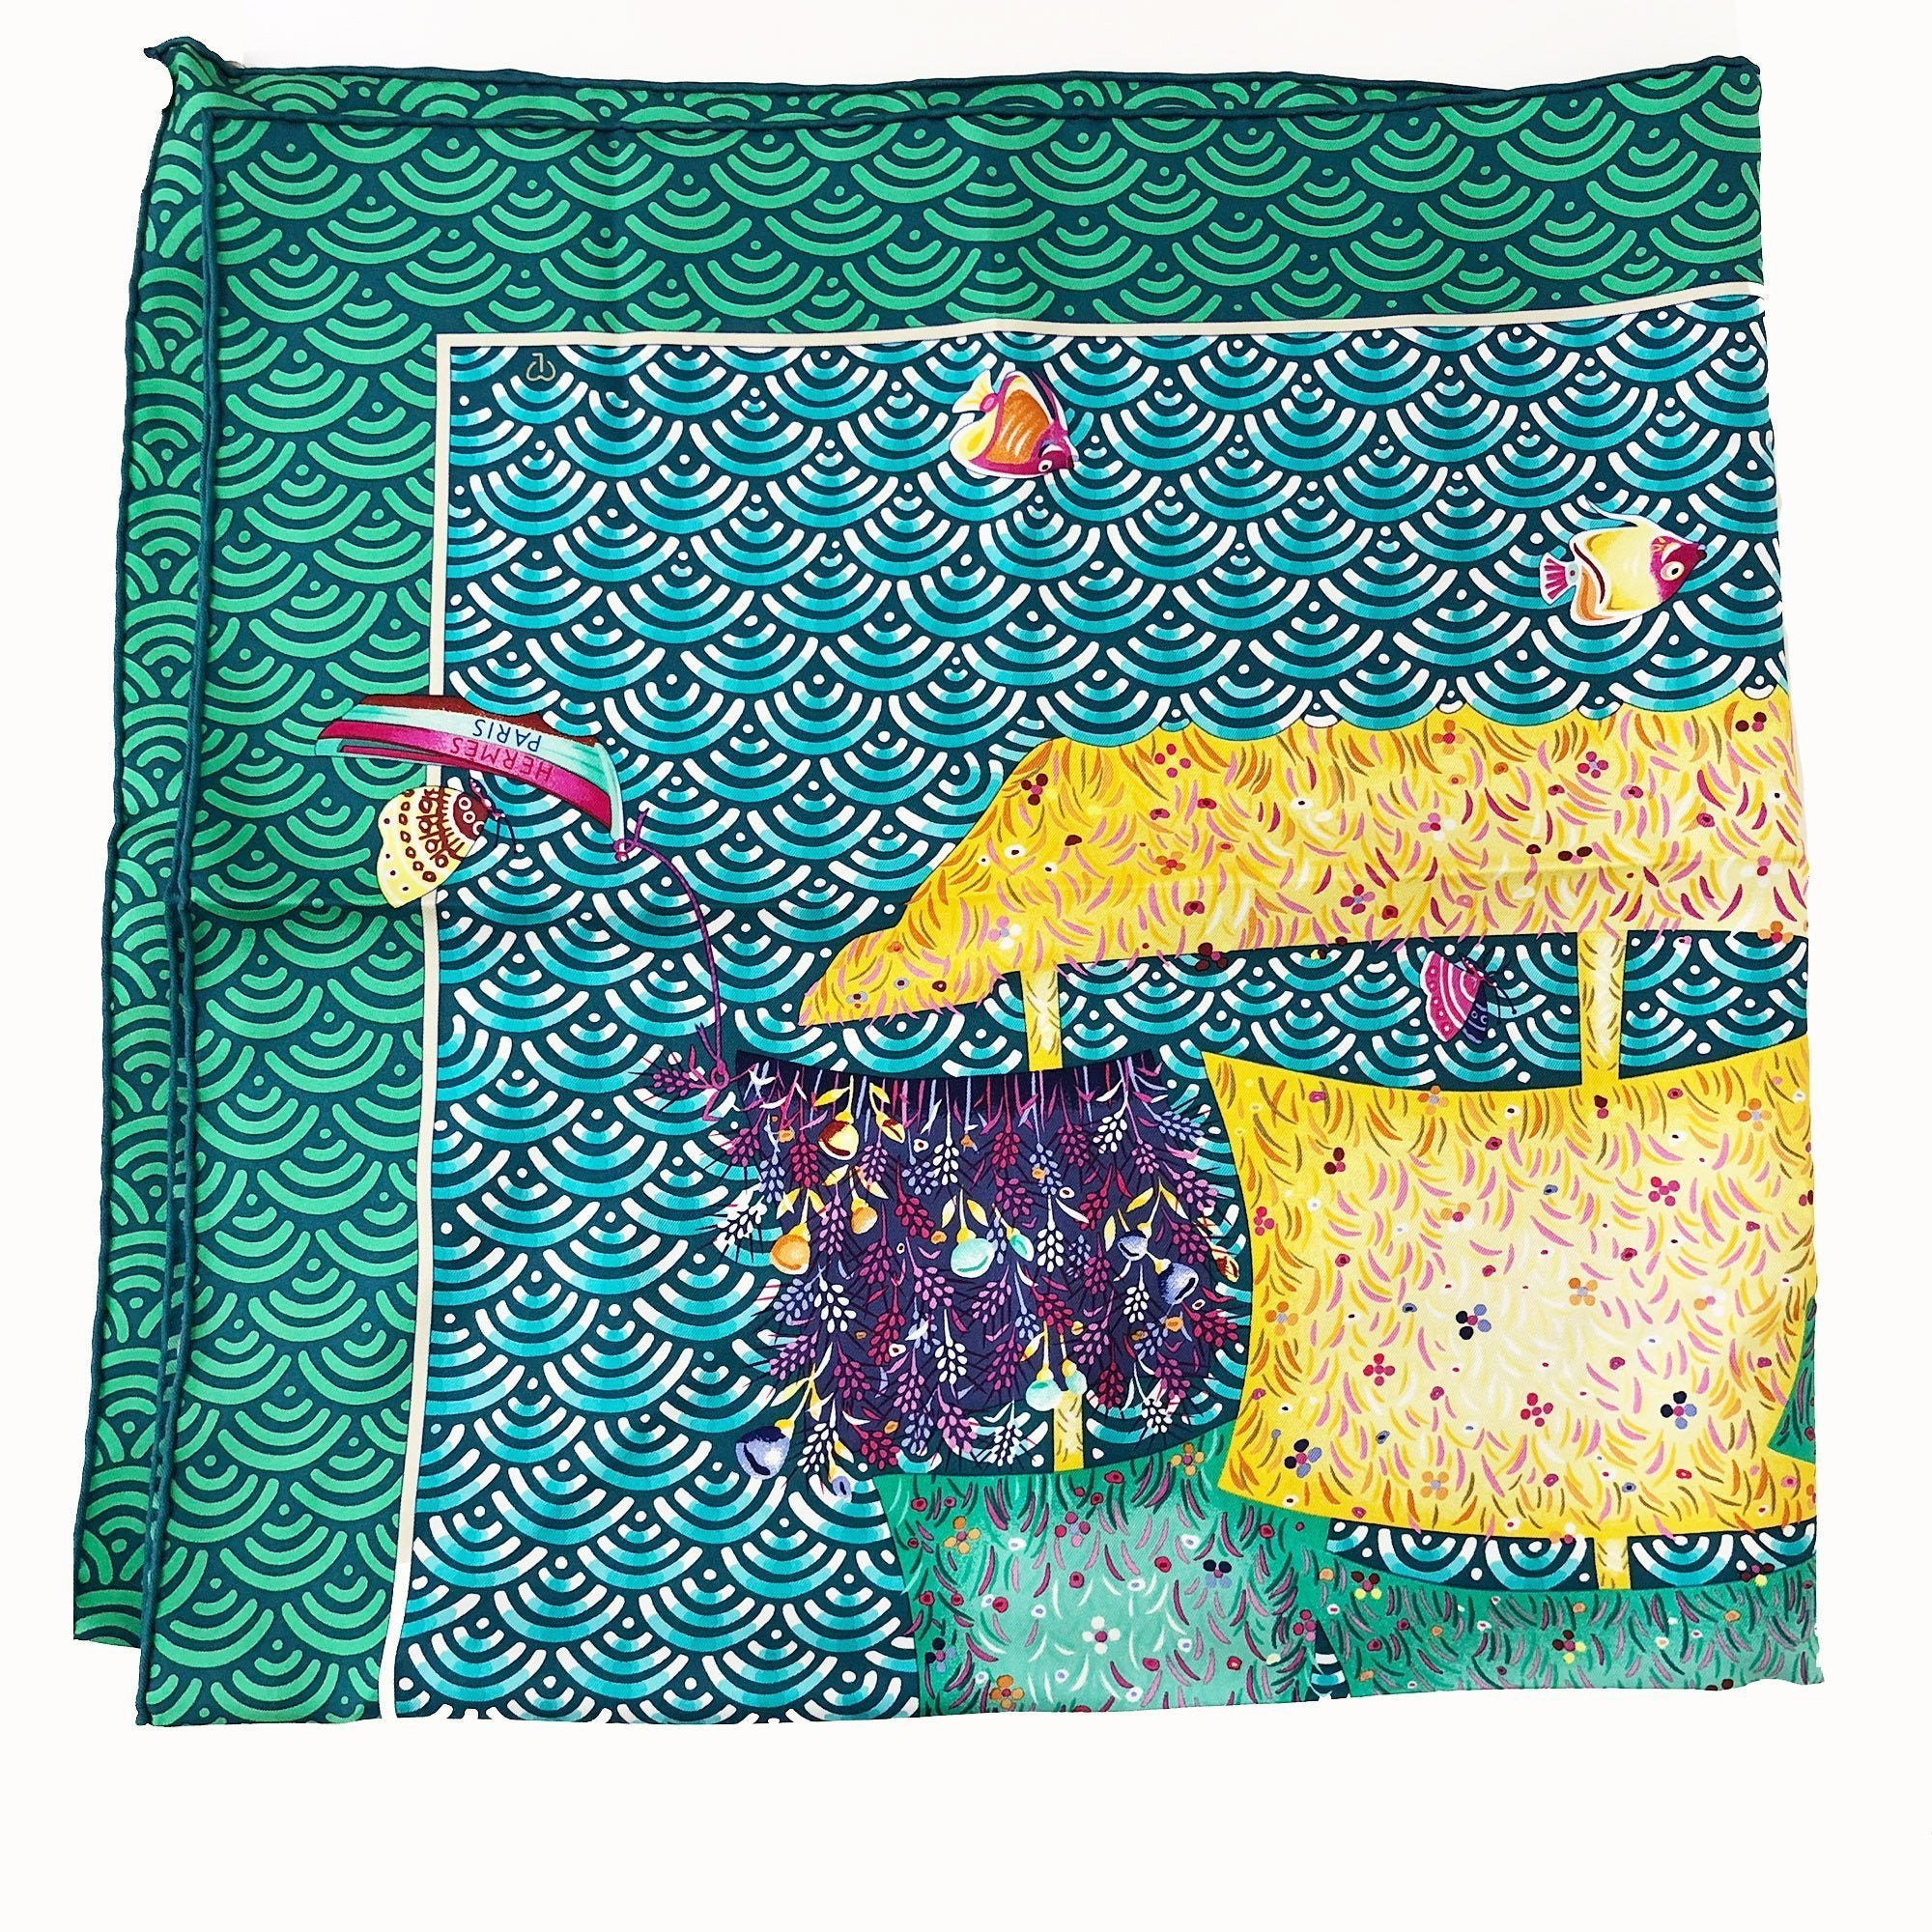 Hermes Ship Print Green/Blue/Multicolor Silk Scarf